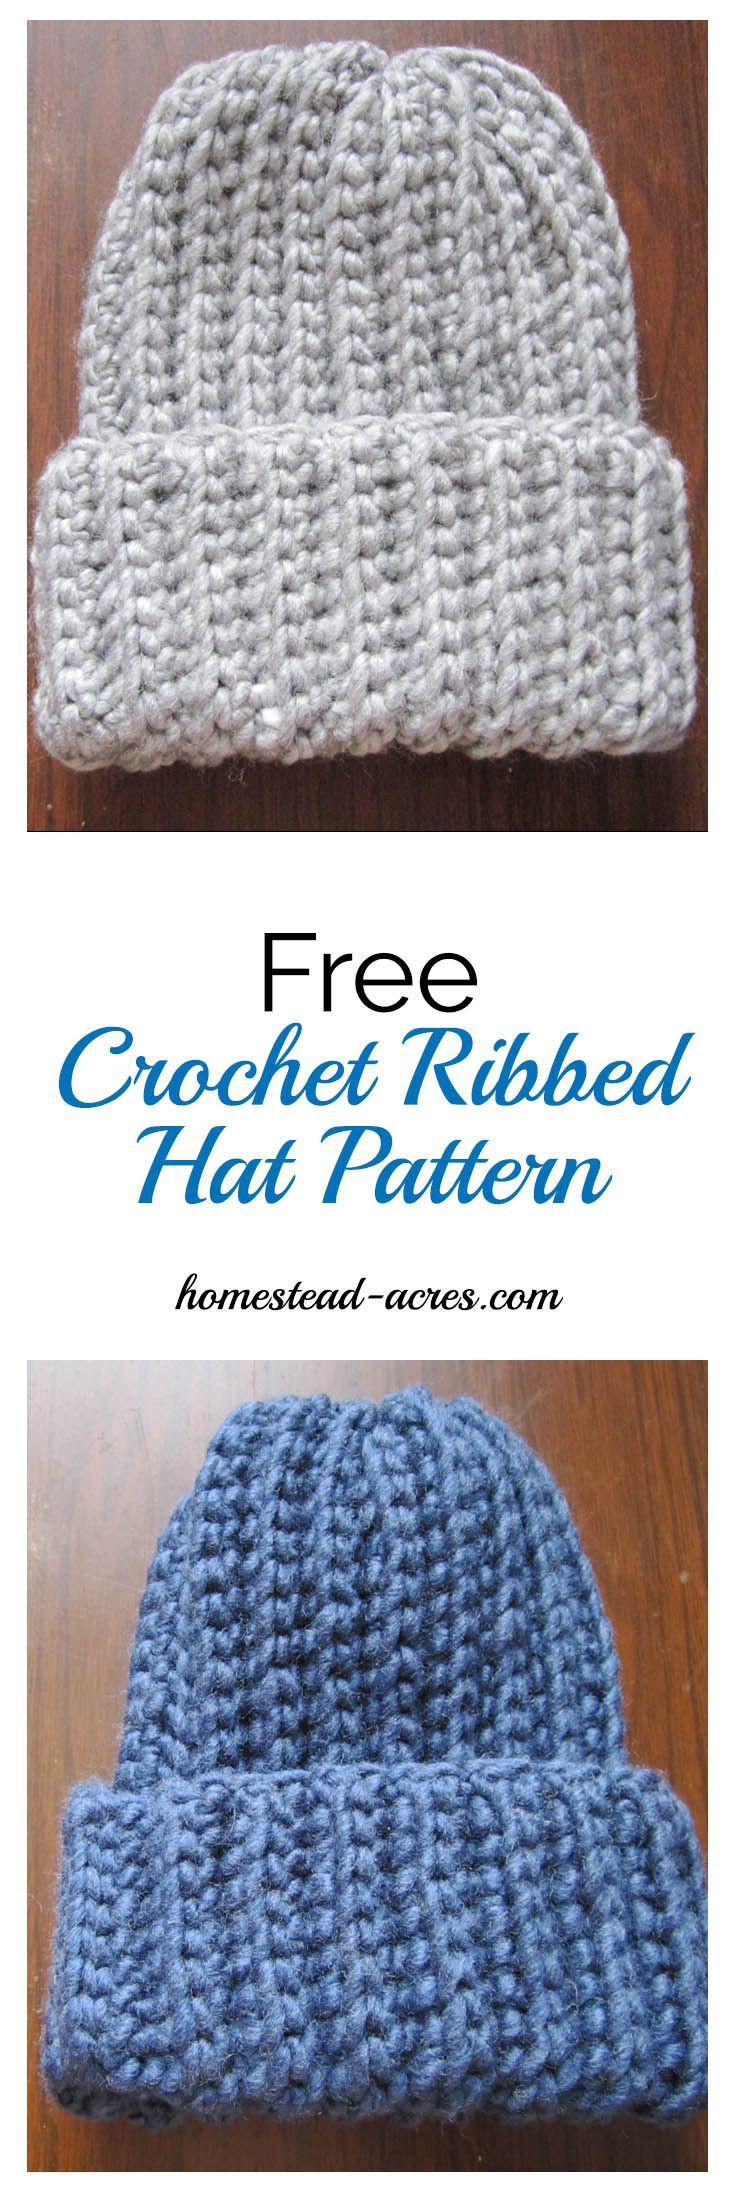 1000 images about Knit and Crochet on Pinterest